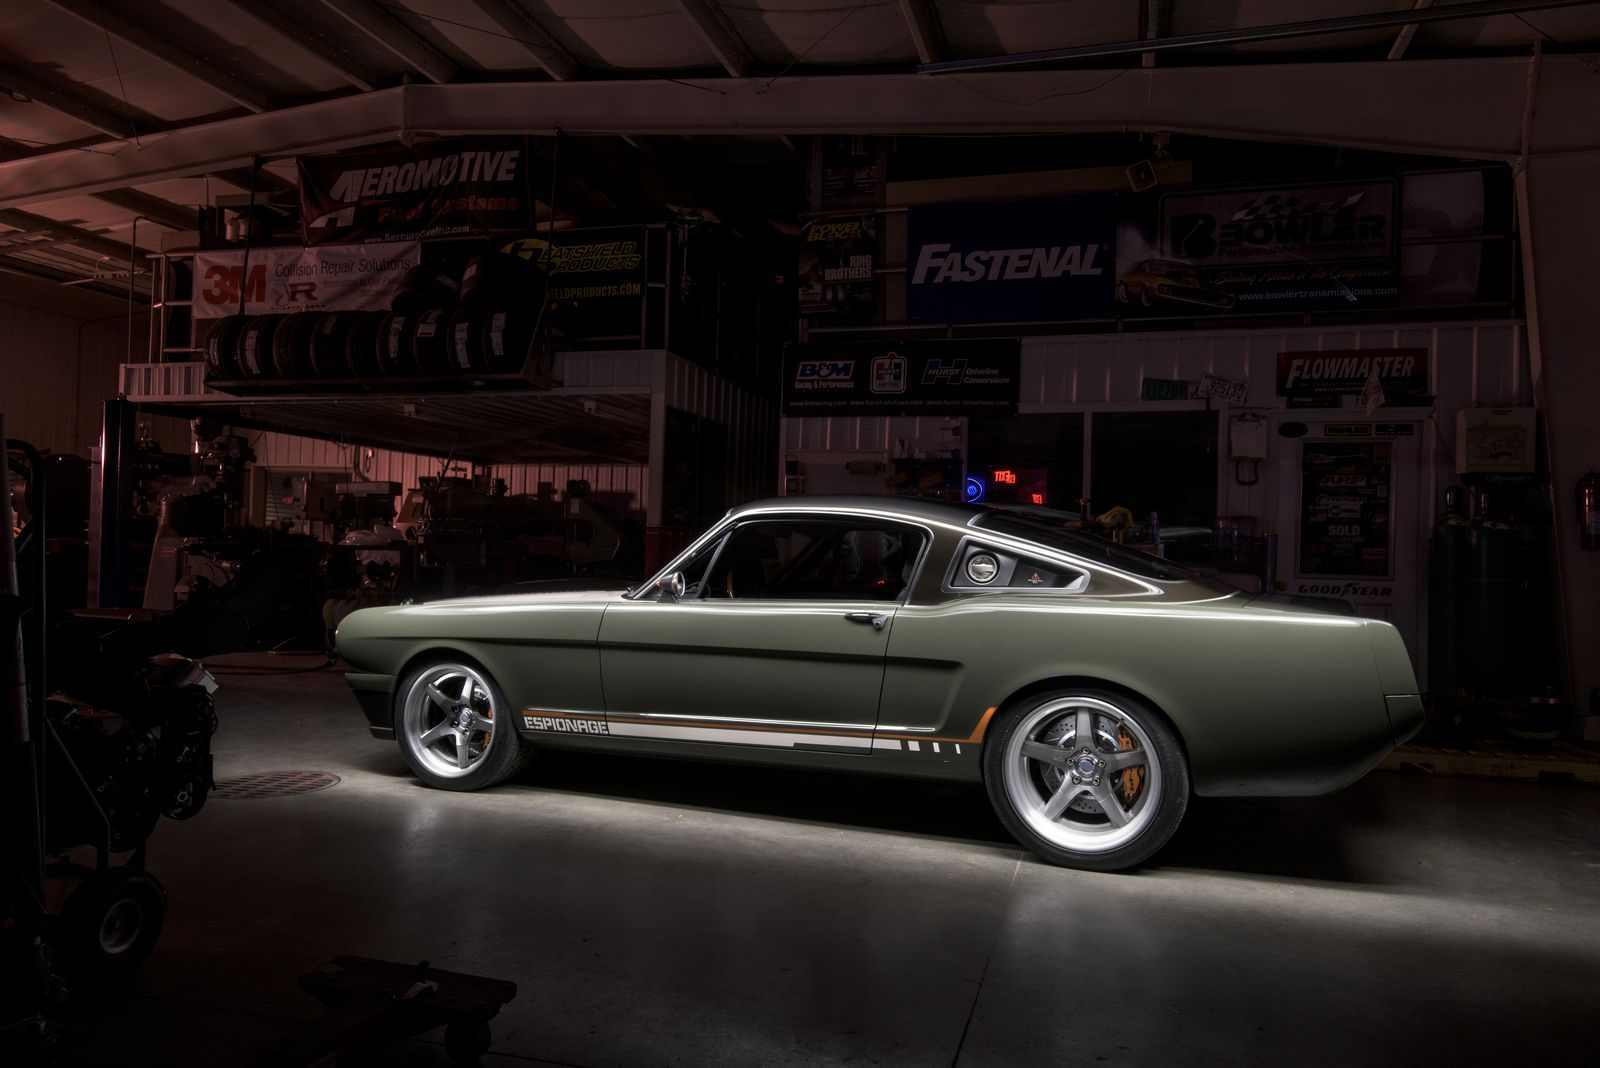 Espionage Mustang Fast Back Ringbrothers Muscle Cars Zone